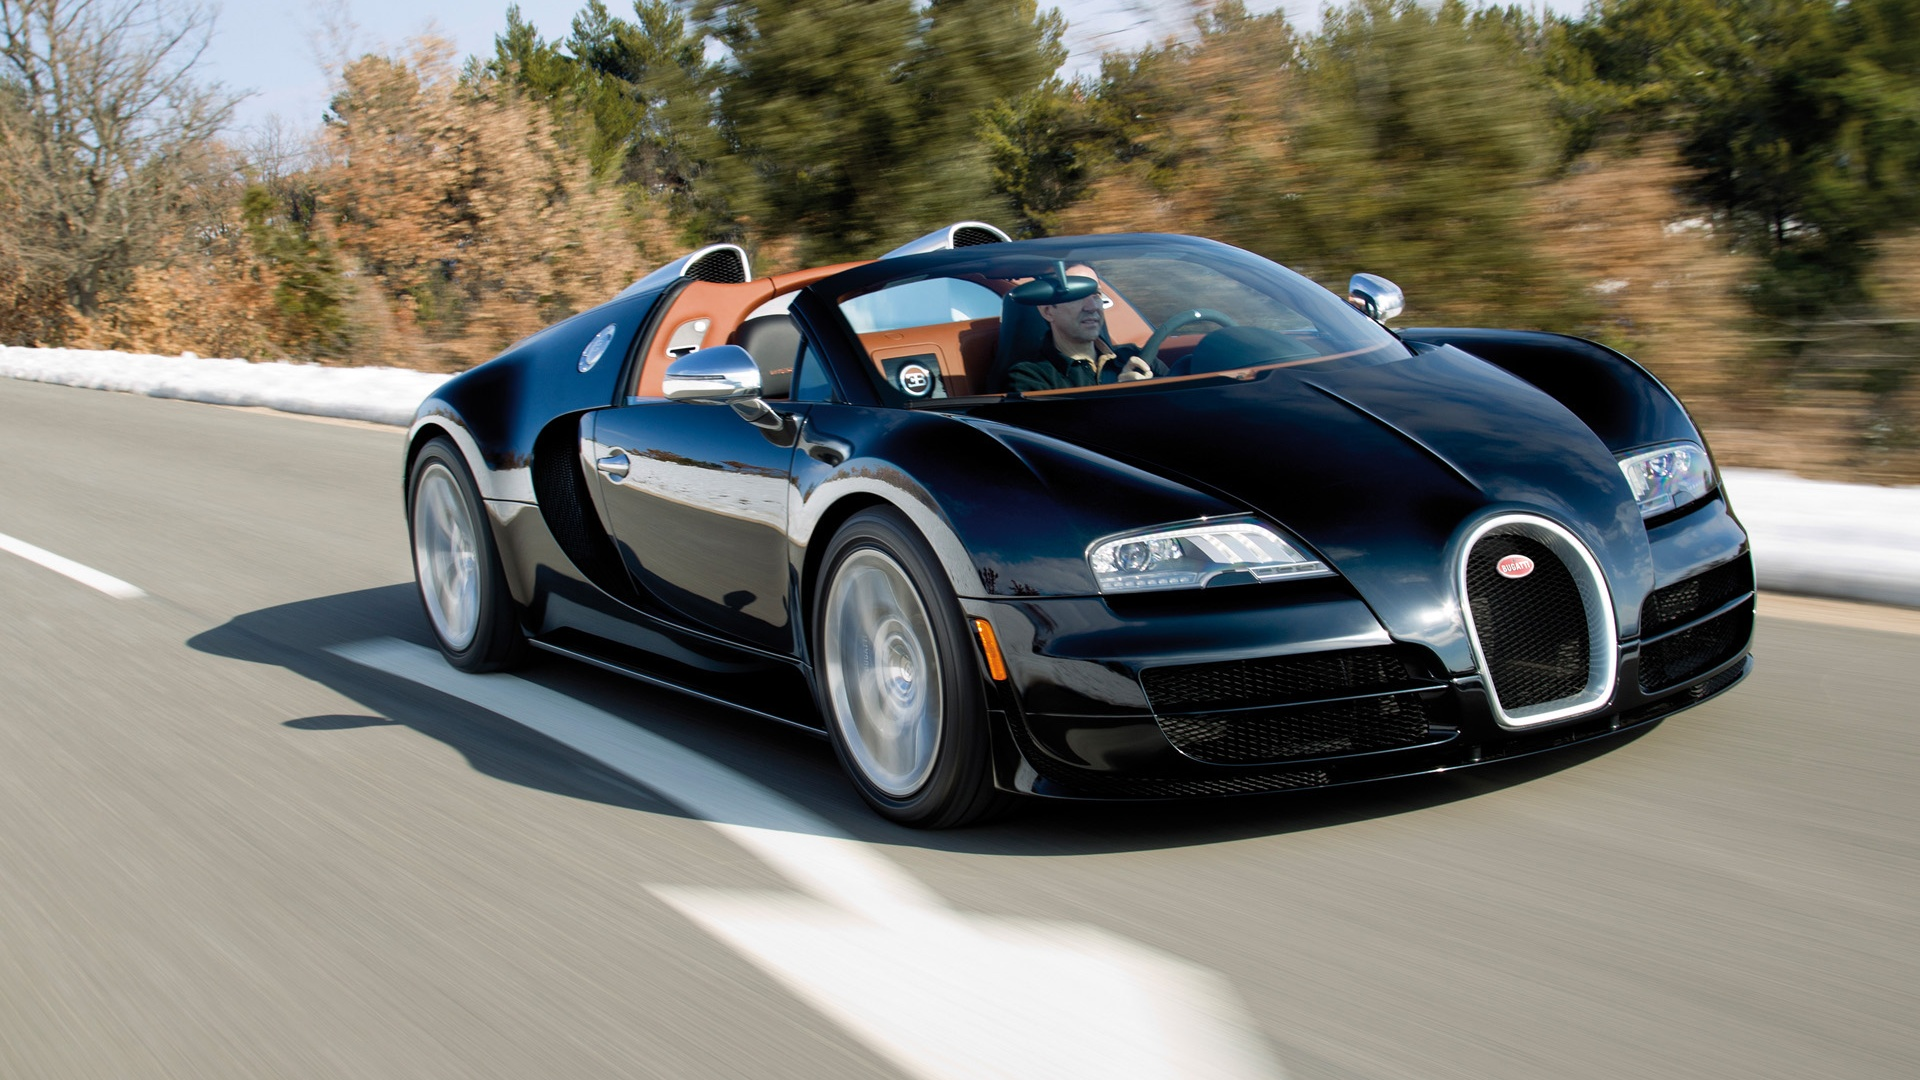 1920x1080 2012 bugatti veyron 16 4 grand sport vitesse speed desktop pc and mac wallpaper. Black Bedroom Furniture Sets. Home Design Ideas